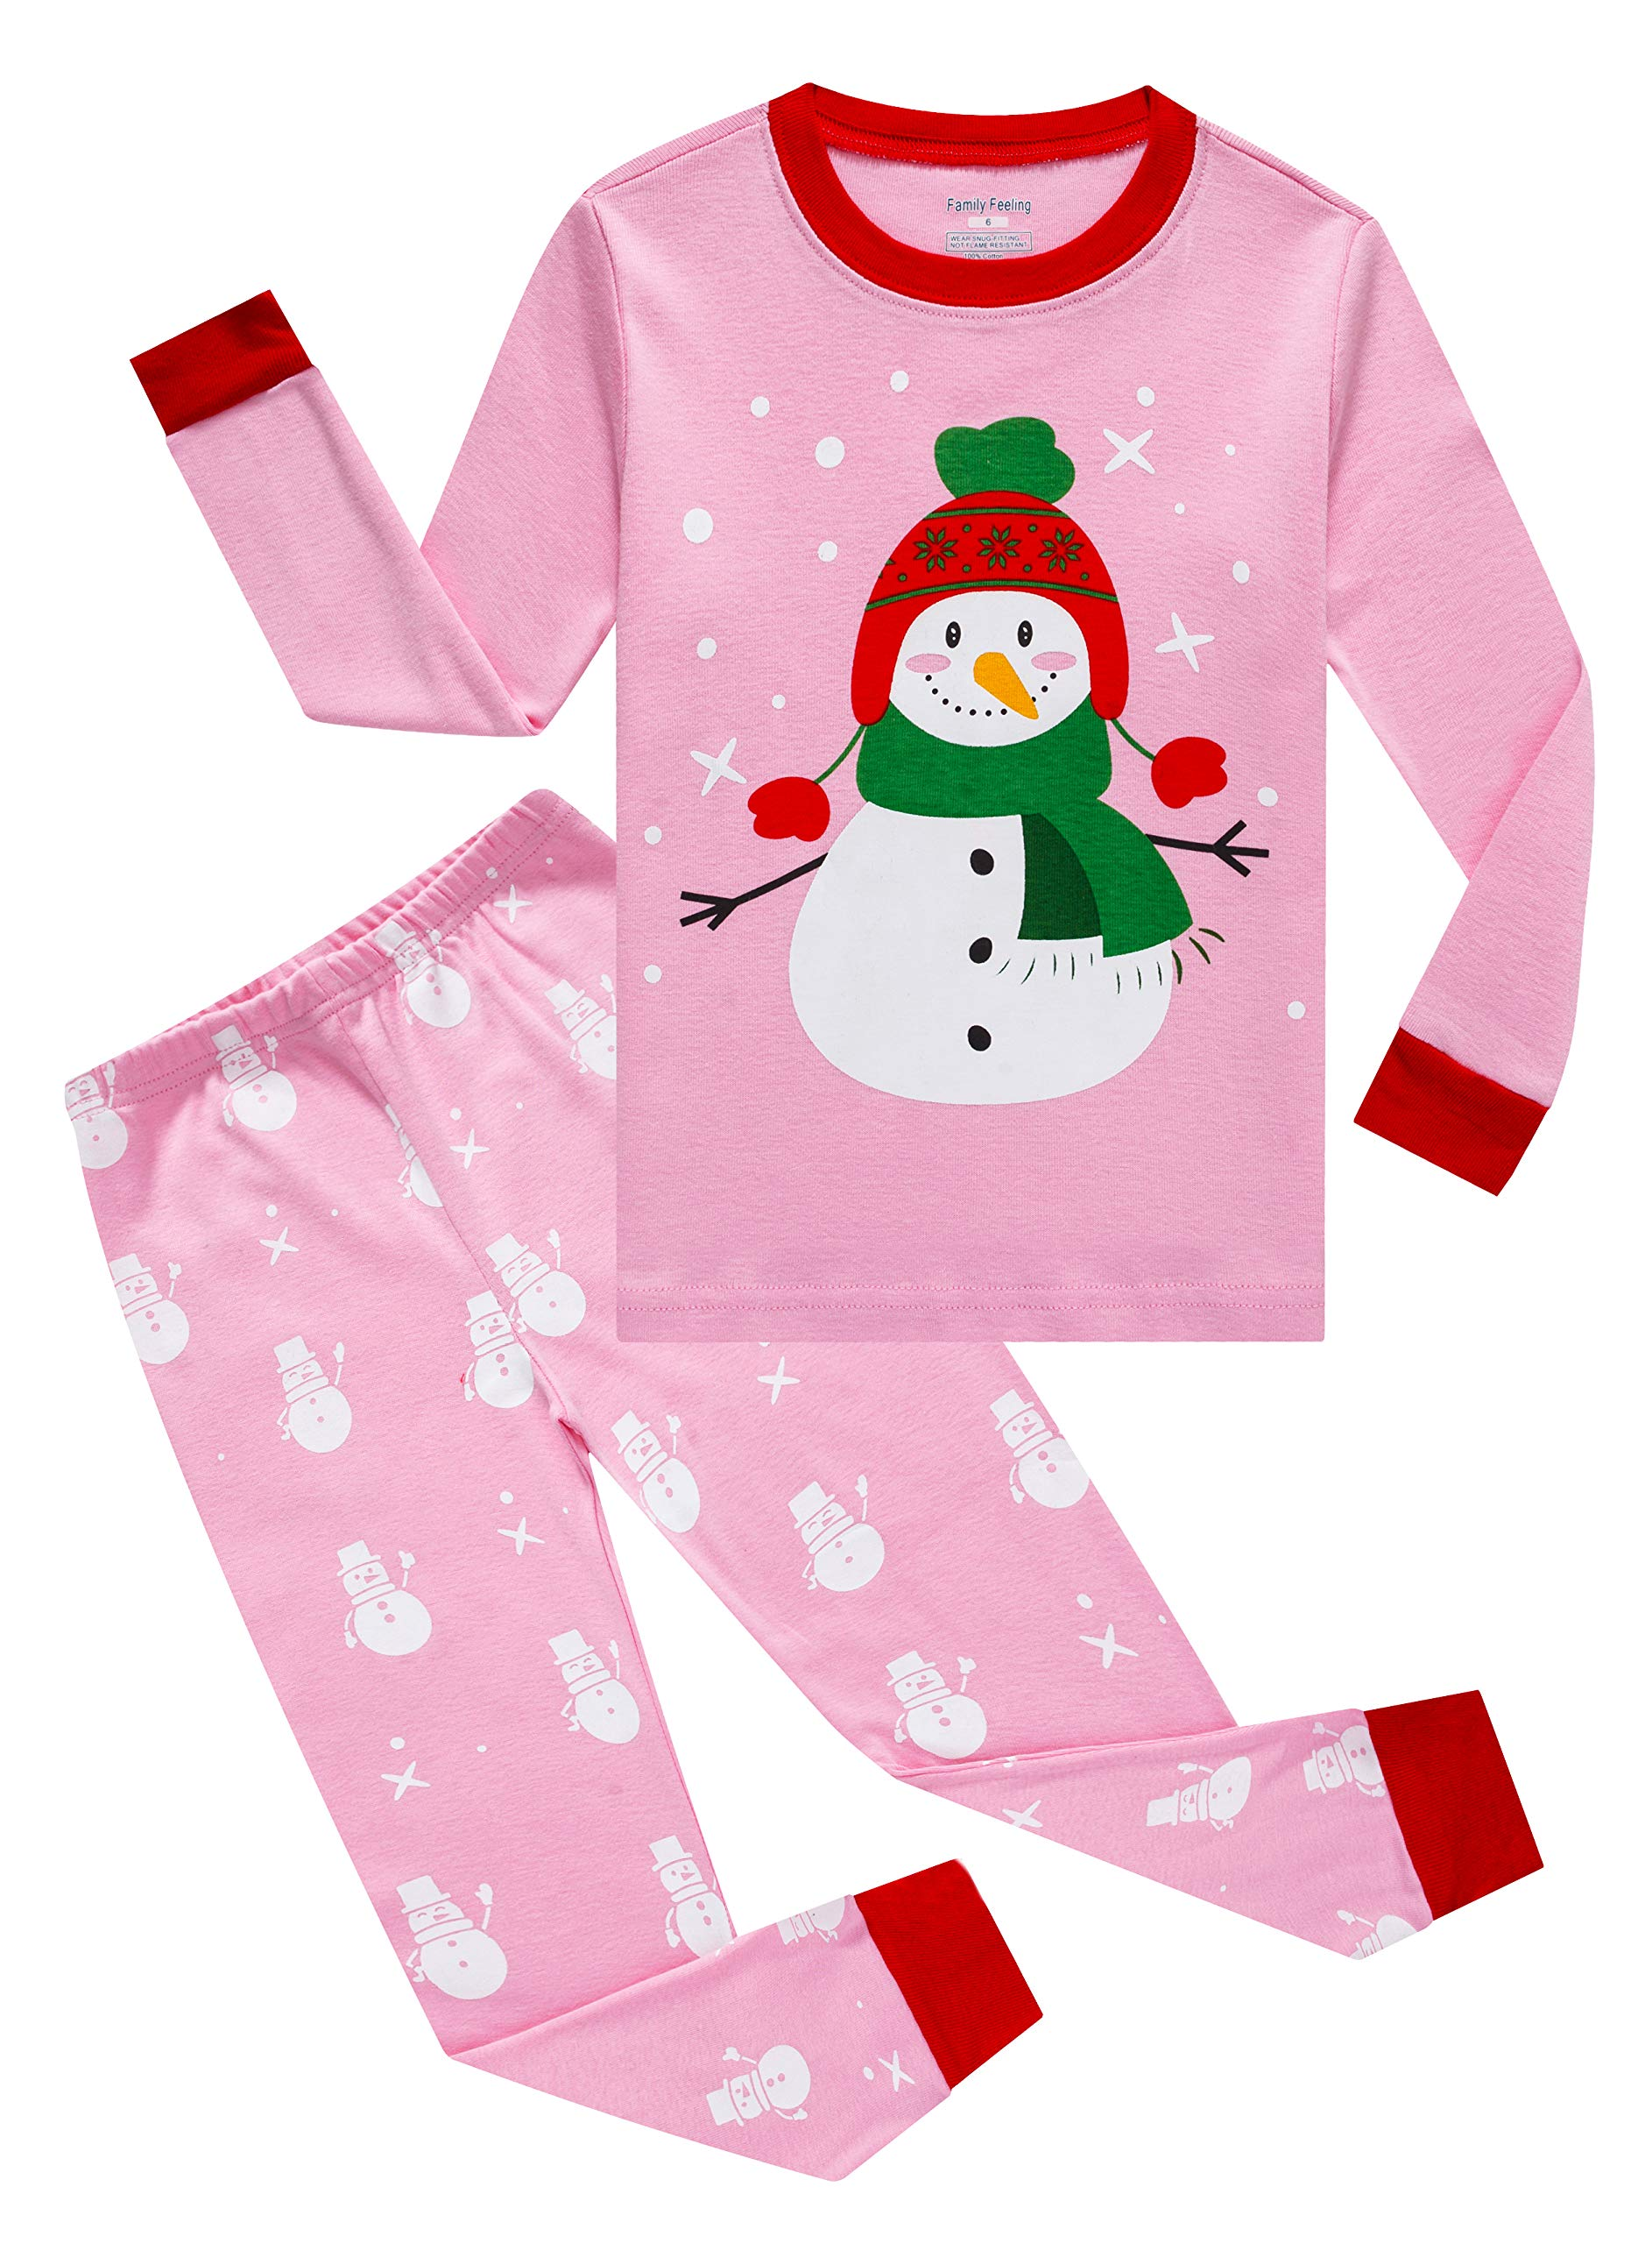 Image of Cute Christmas Snowman Pajamas for Girls and Toddlers - See More